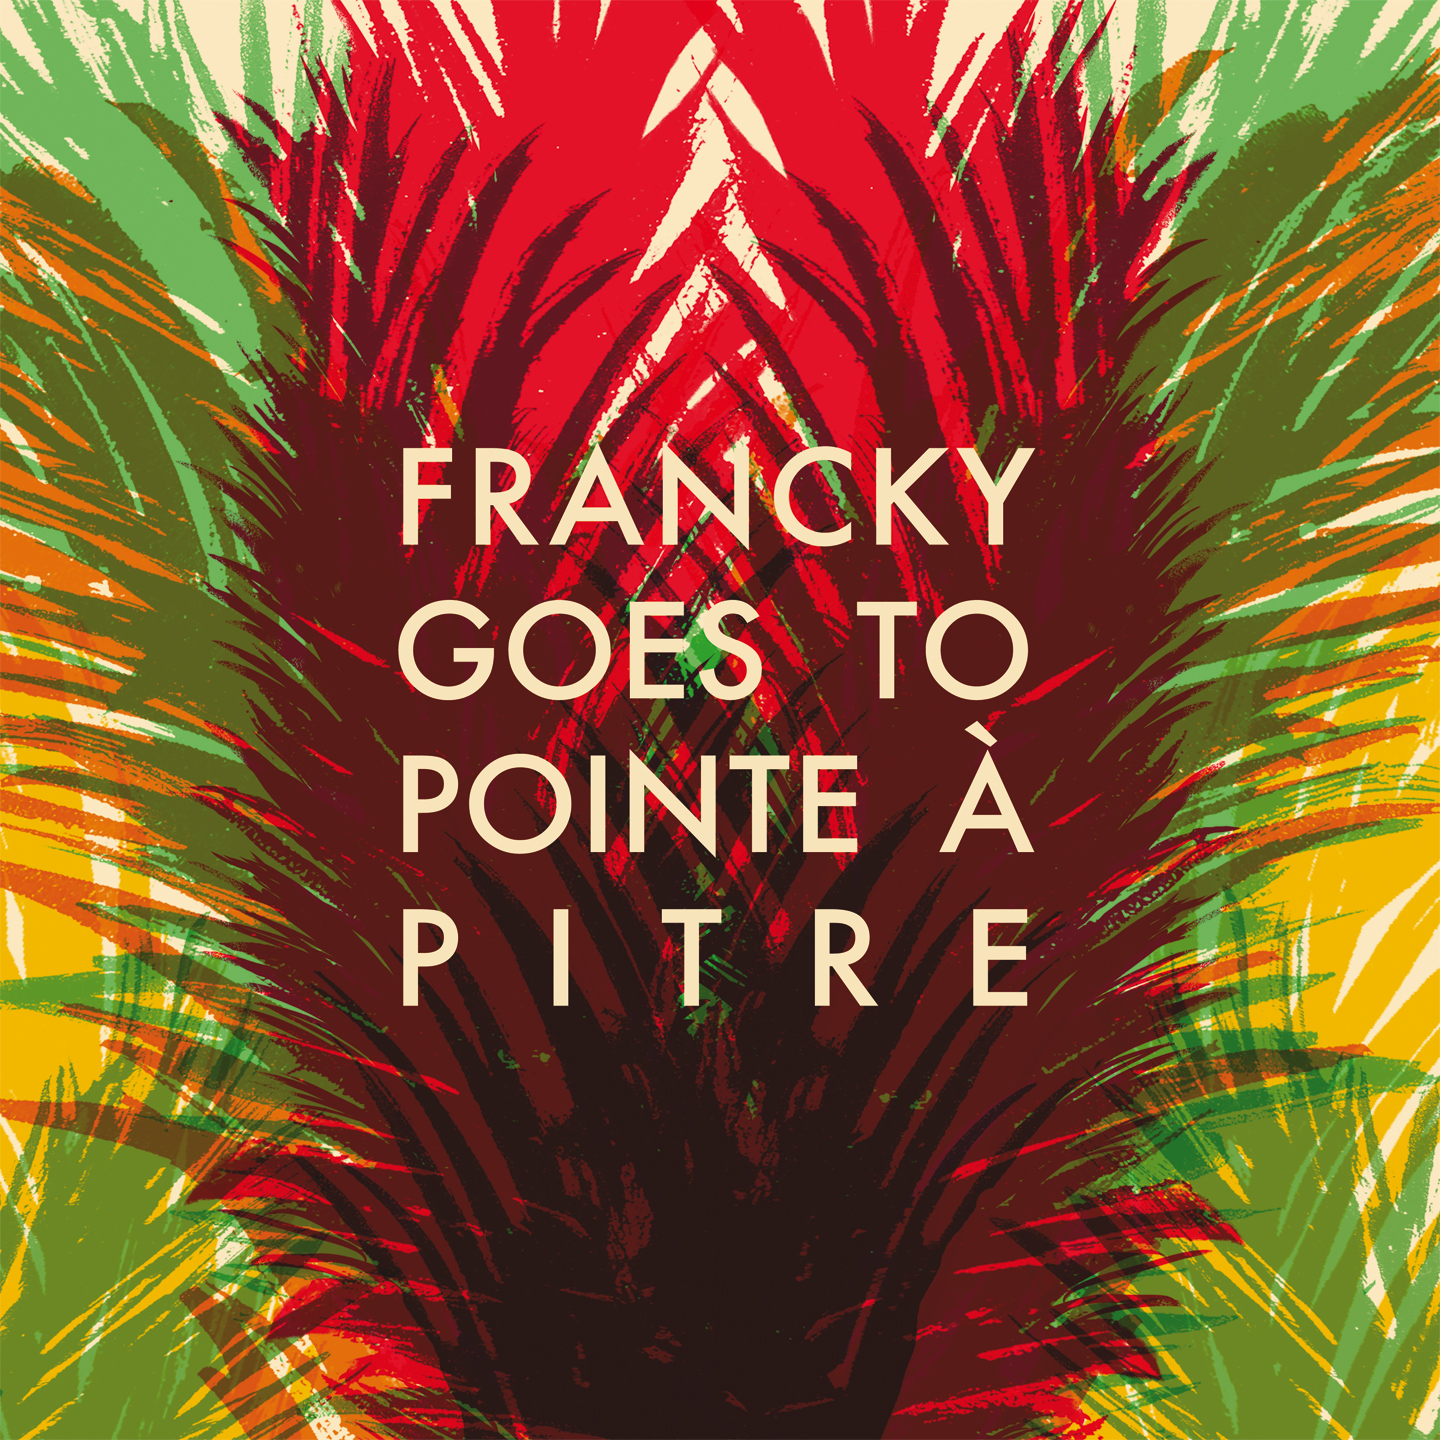 "FRANCKY GOES TO POINT A PITRE ""S/t"" VINYL"